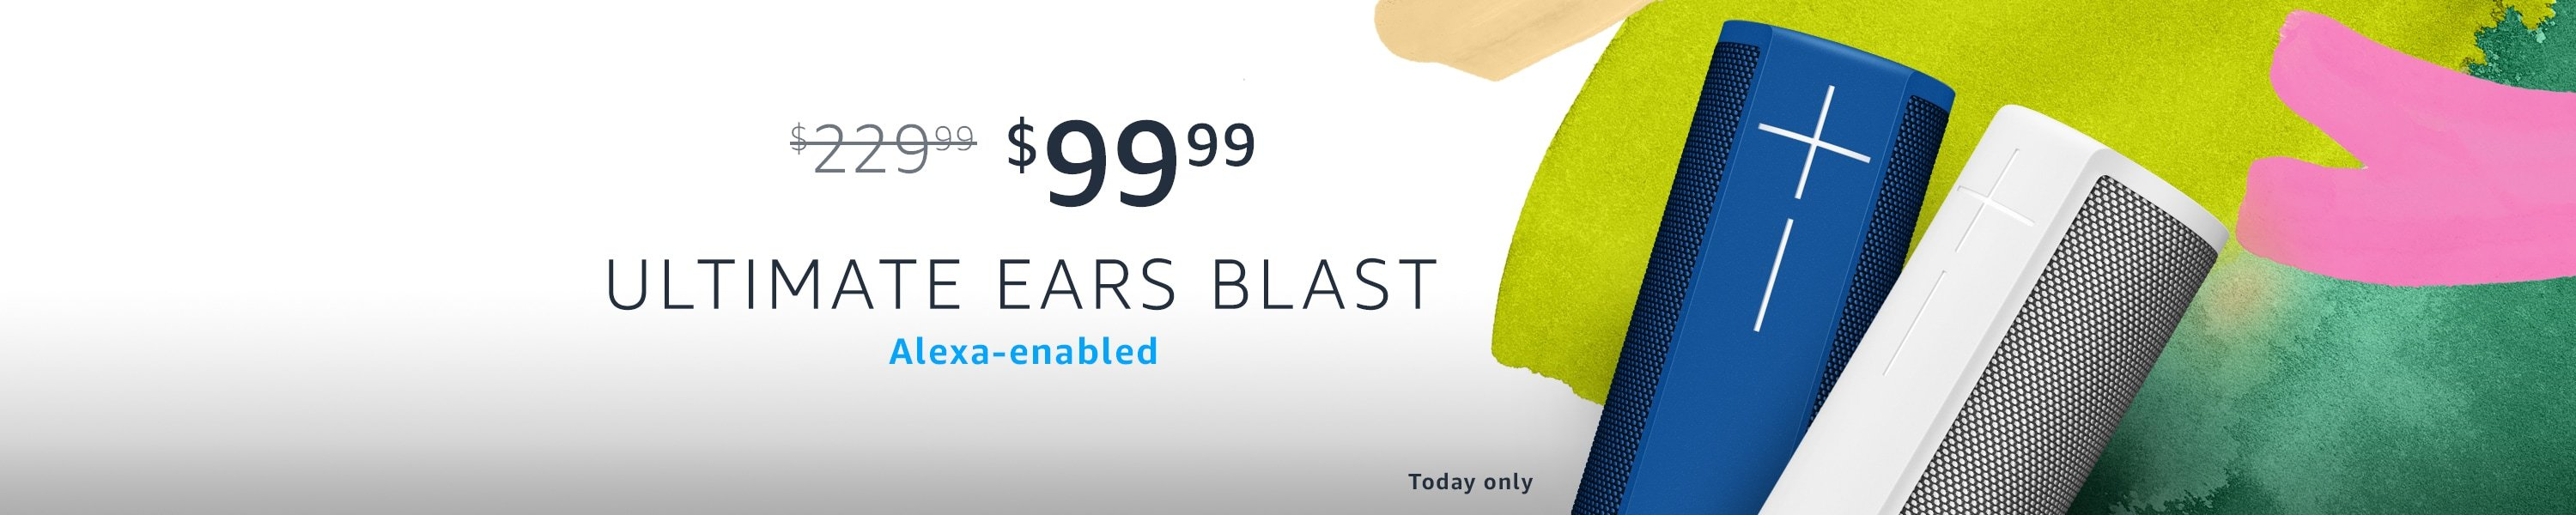 Deal of the Day: Ultimate Ears BLAST $99.99